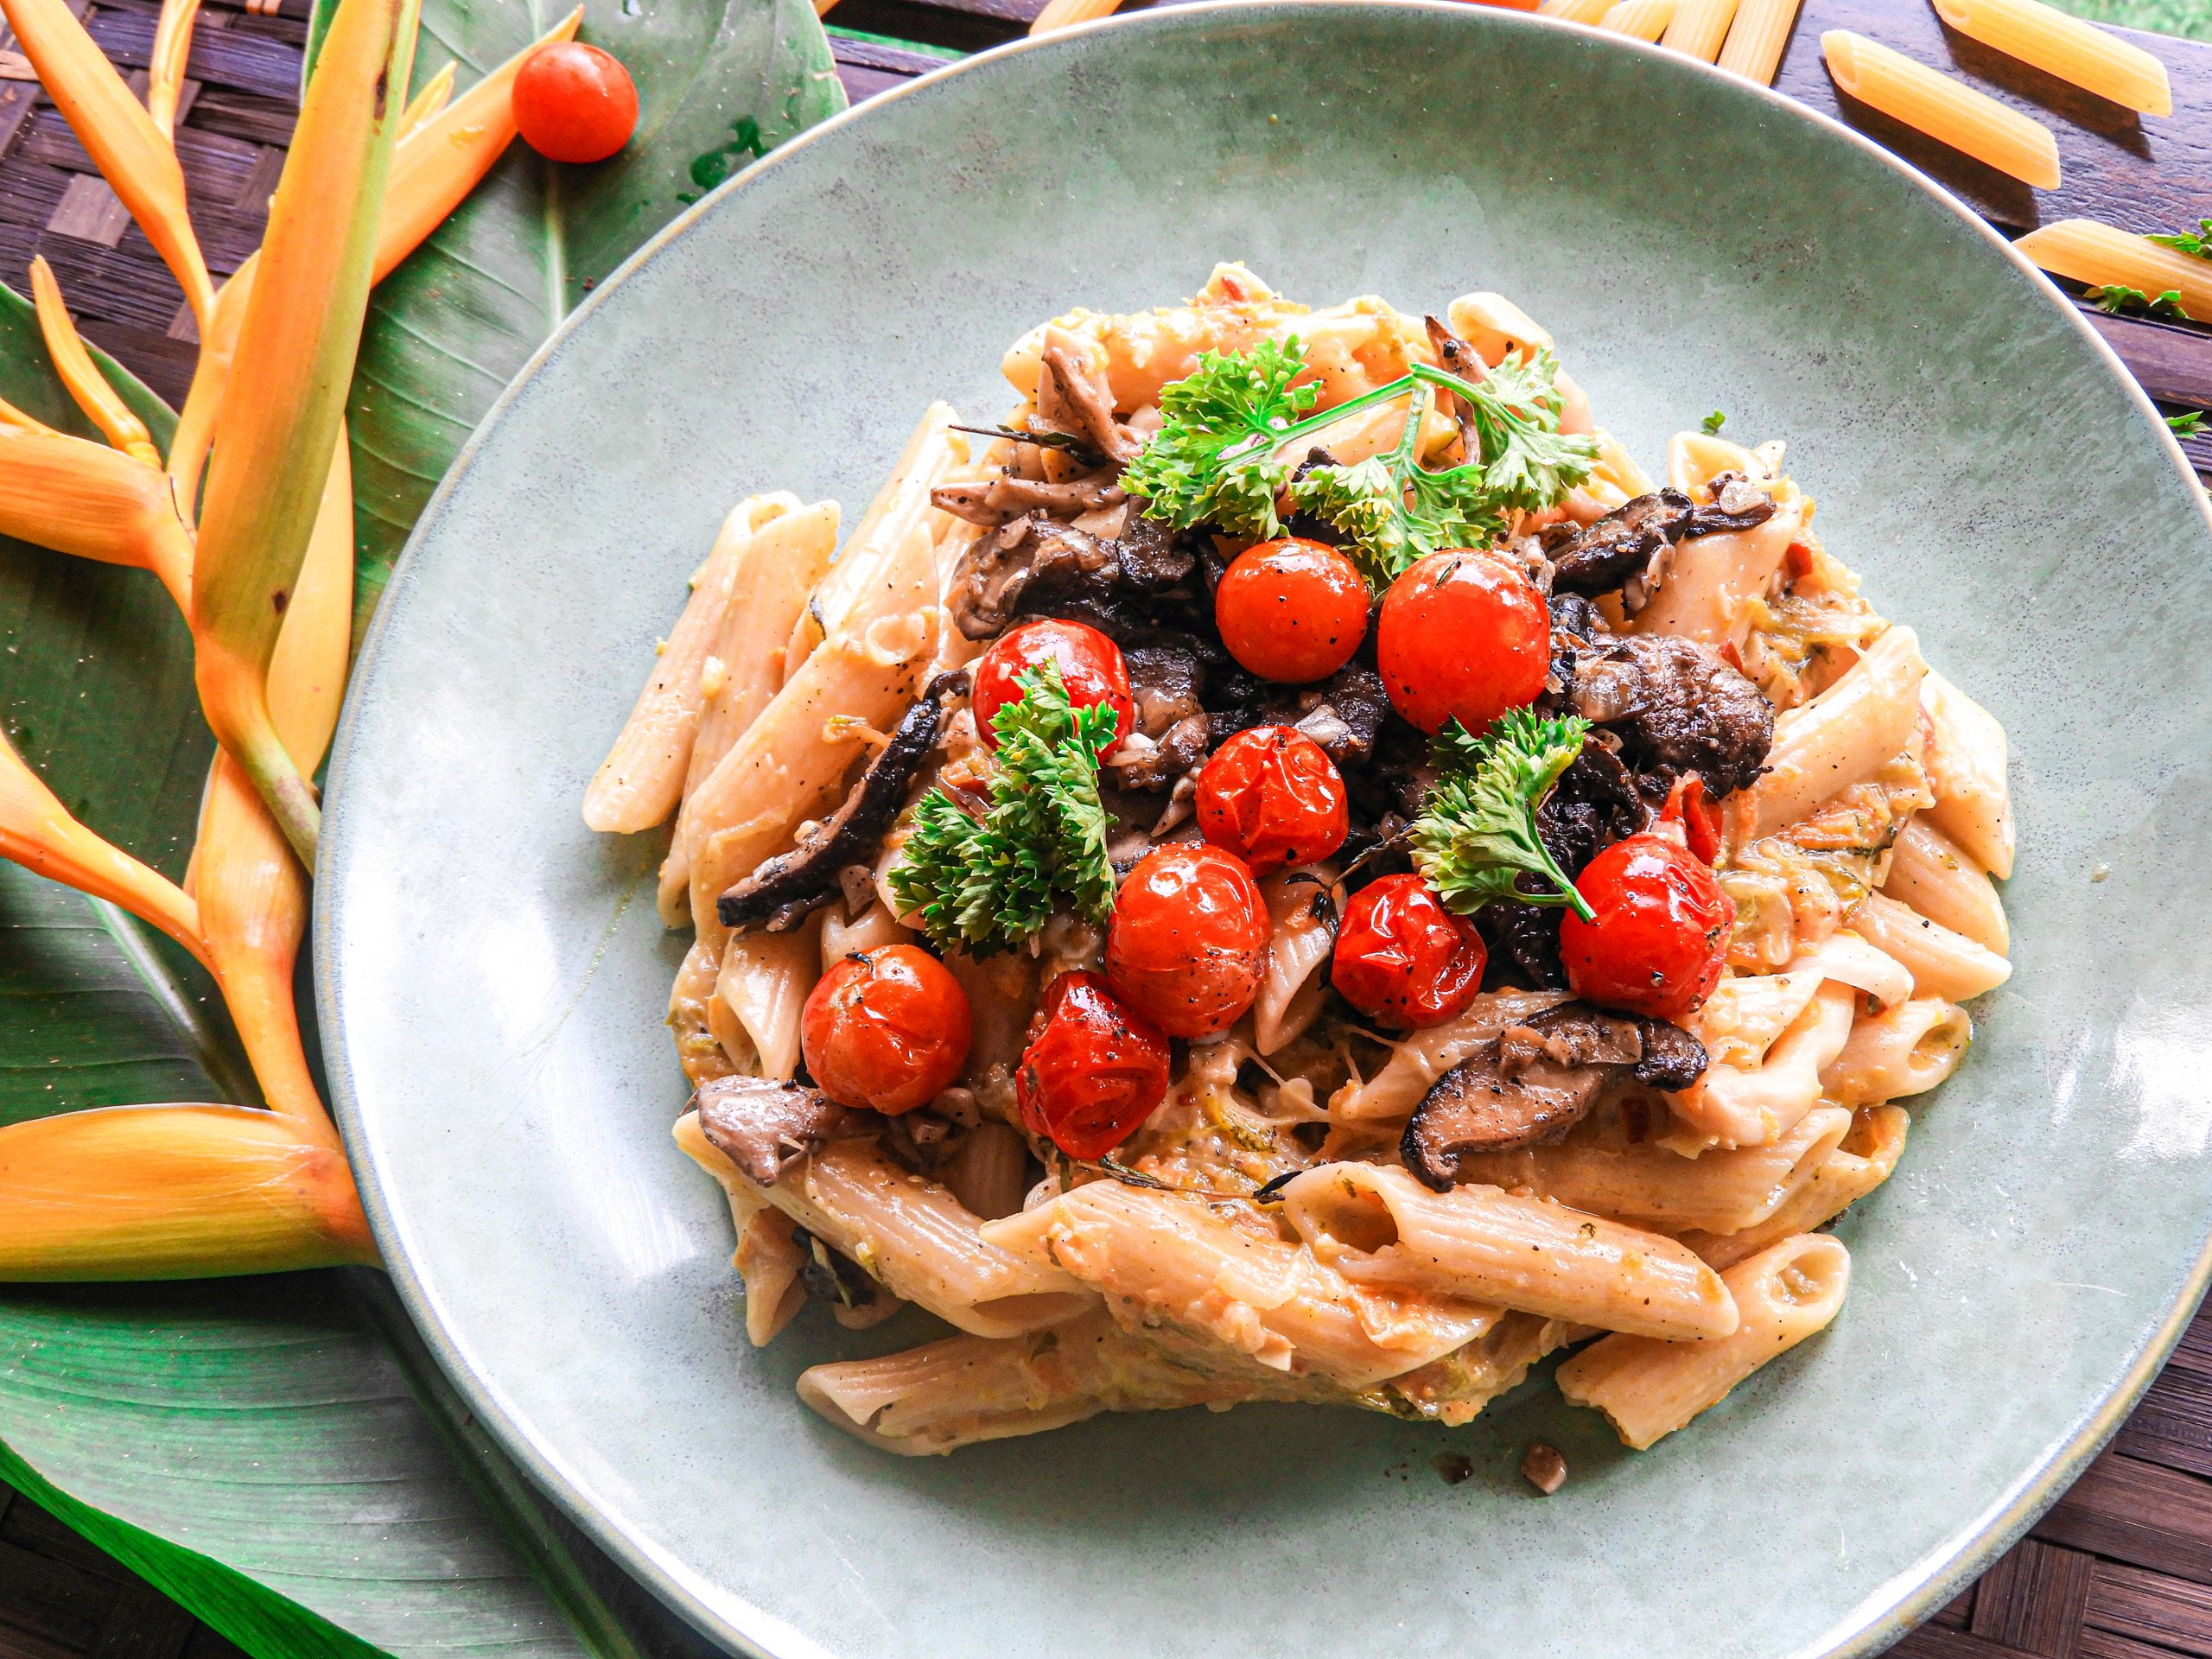 Creamy Lemon Vegetable Pasta with Grilled Mushrooms & Cherry Tomatoes